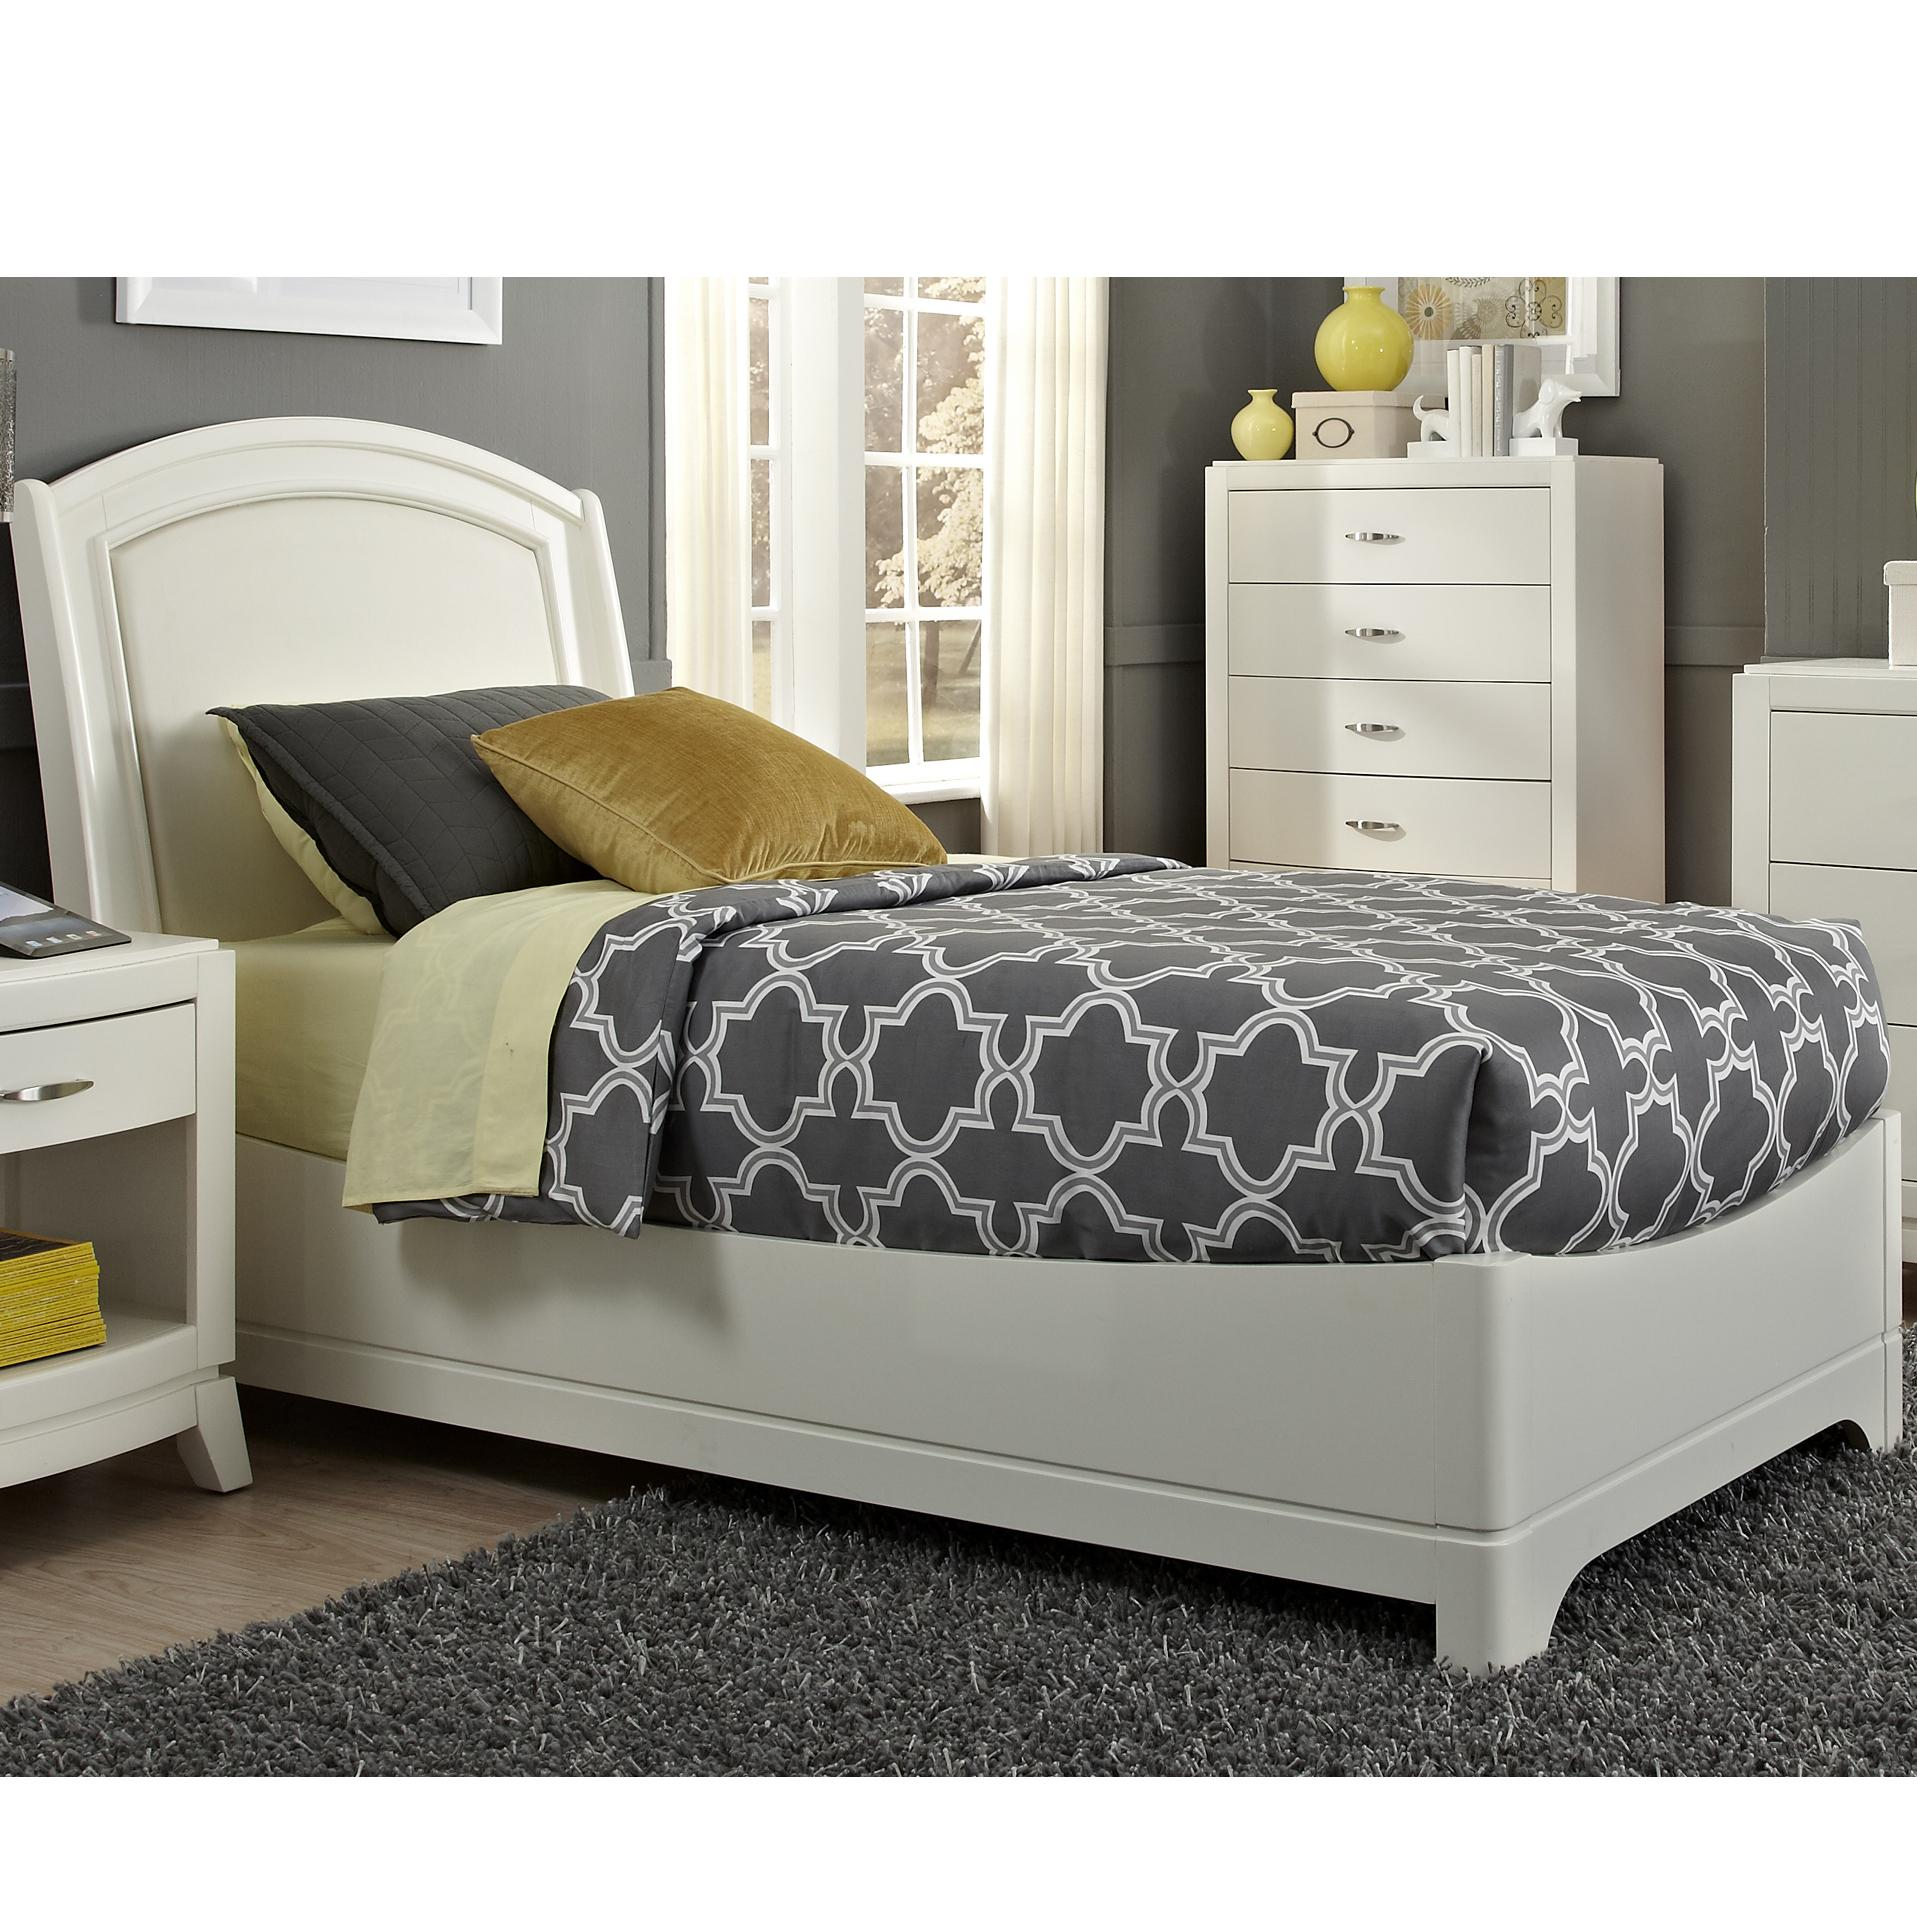 Liberty Furniture Avalon II Full Leather Bed - Item Number: 205-YBR-FLB